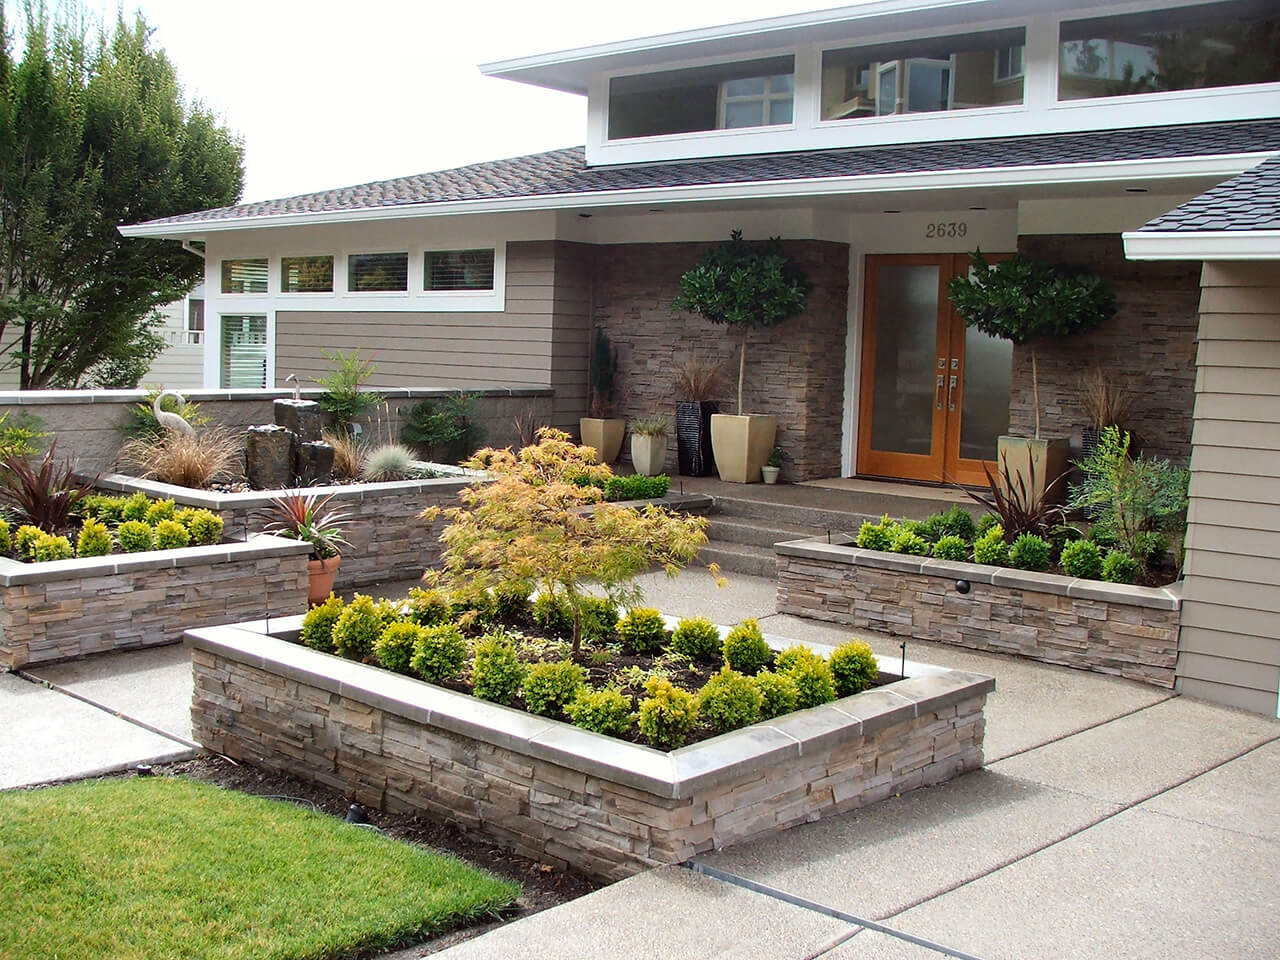 20 brilliant front garden landscaping ideas style motivation ForOutdoor Front Yard Landscaping